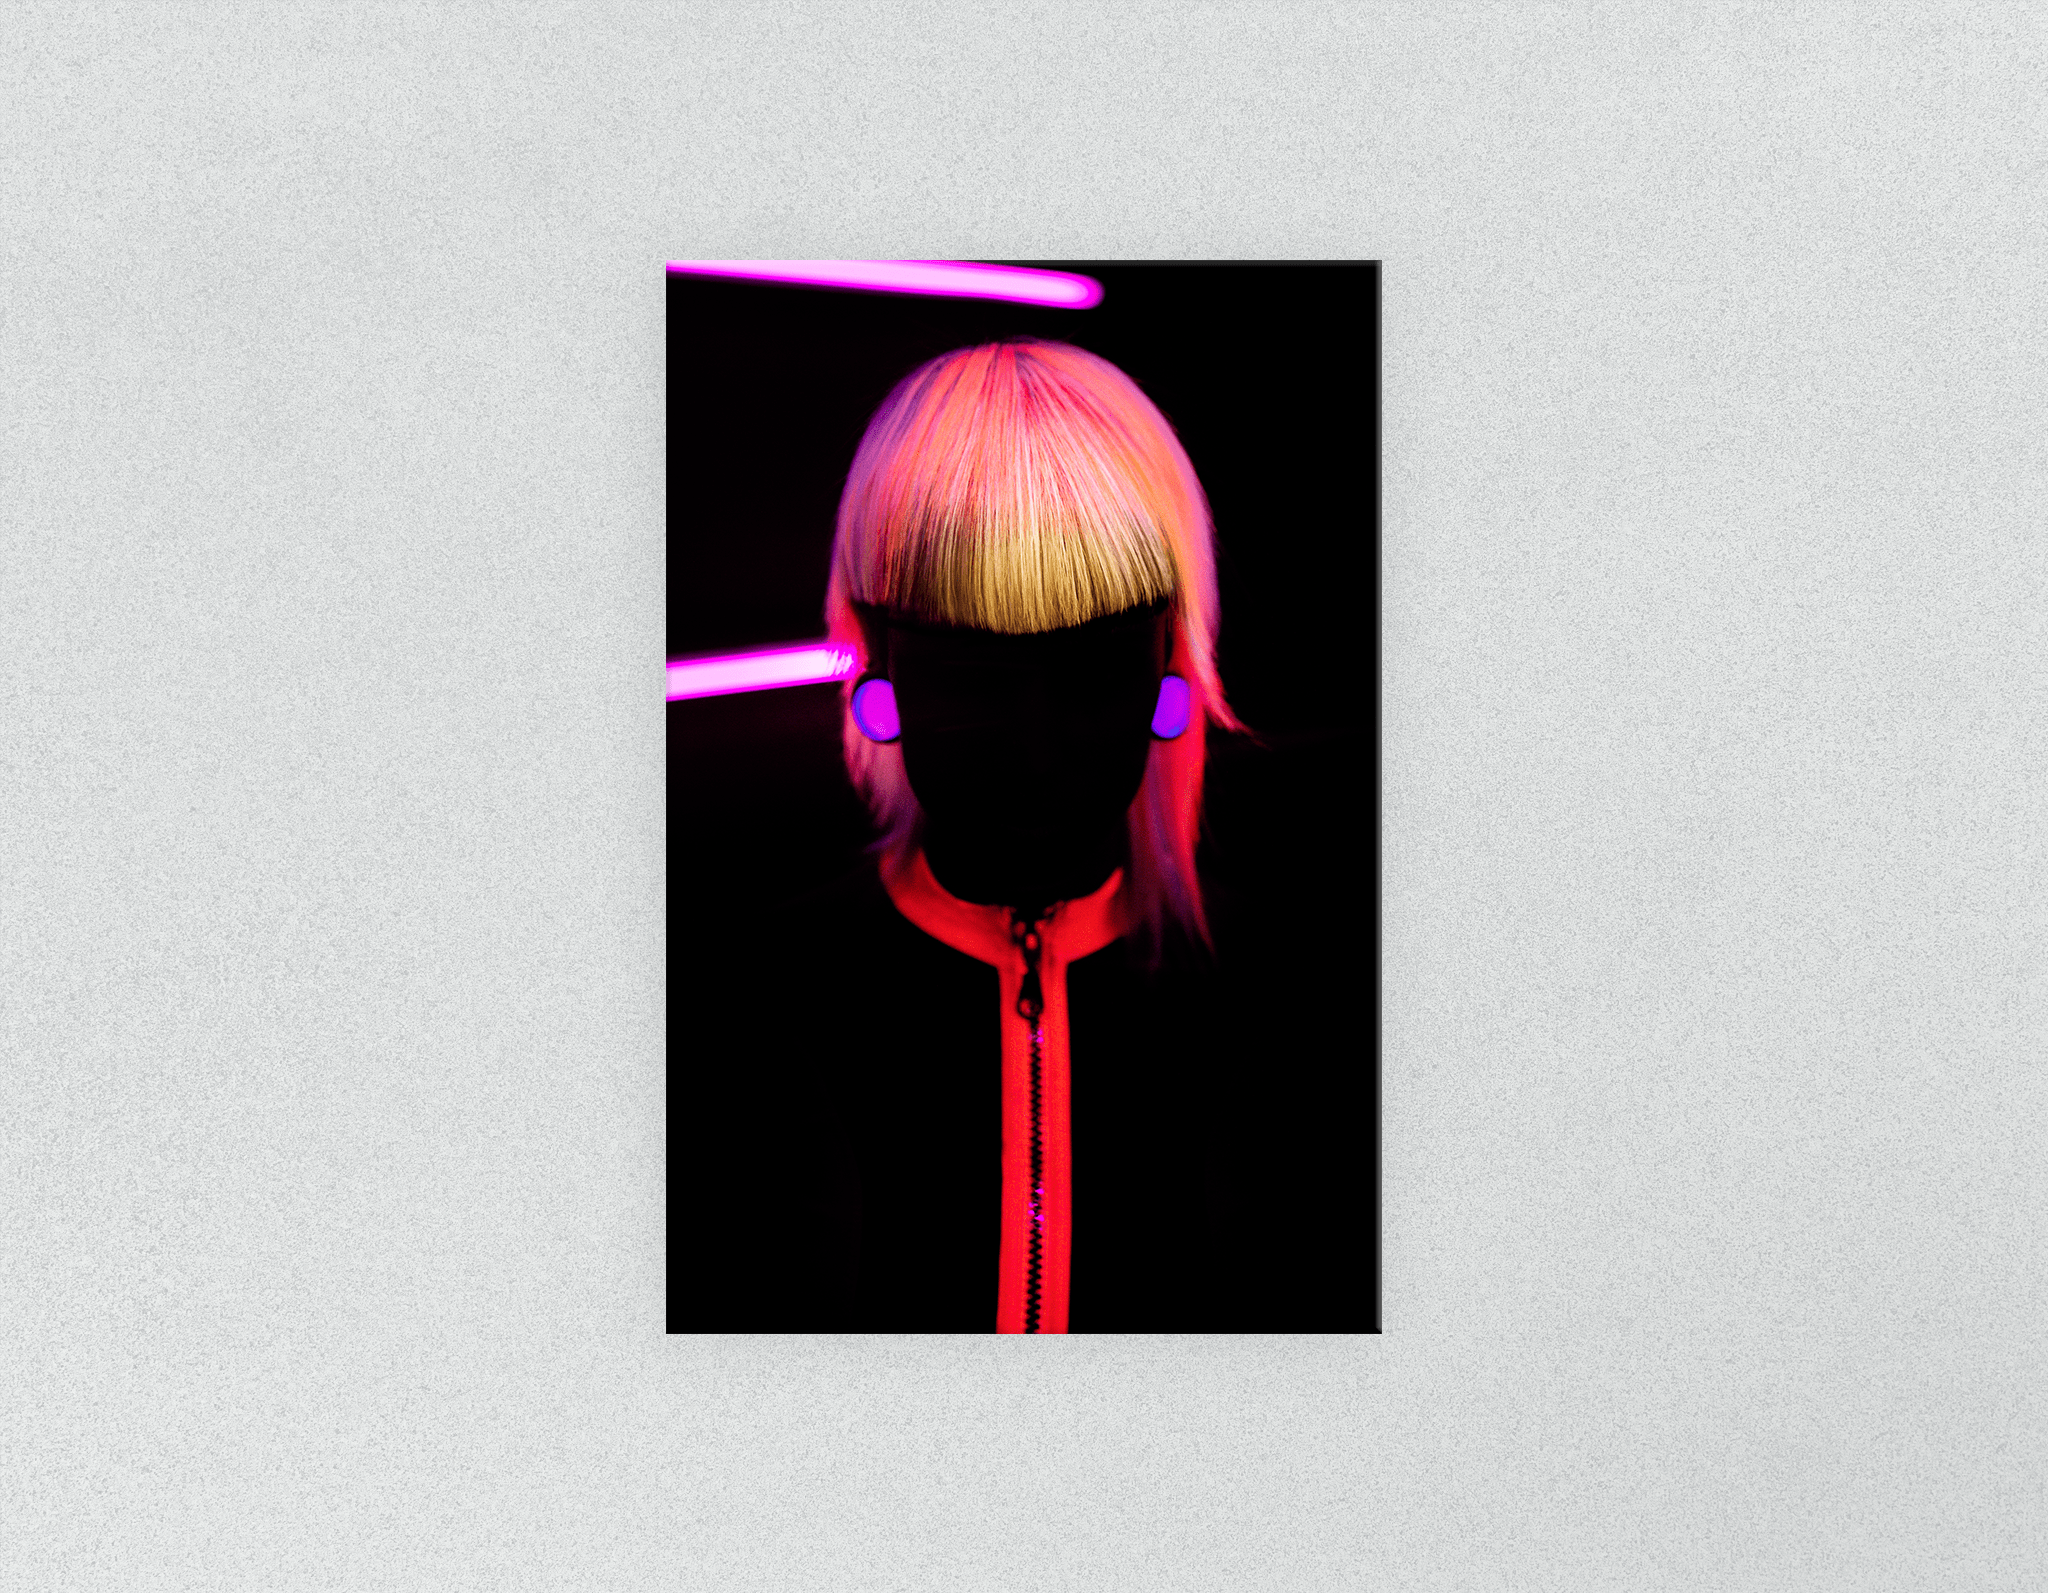 Plastic Salon Posters: Bob with Neon Colored Hairstyle in Silhouette